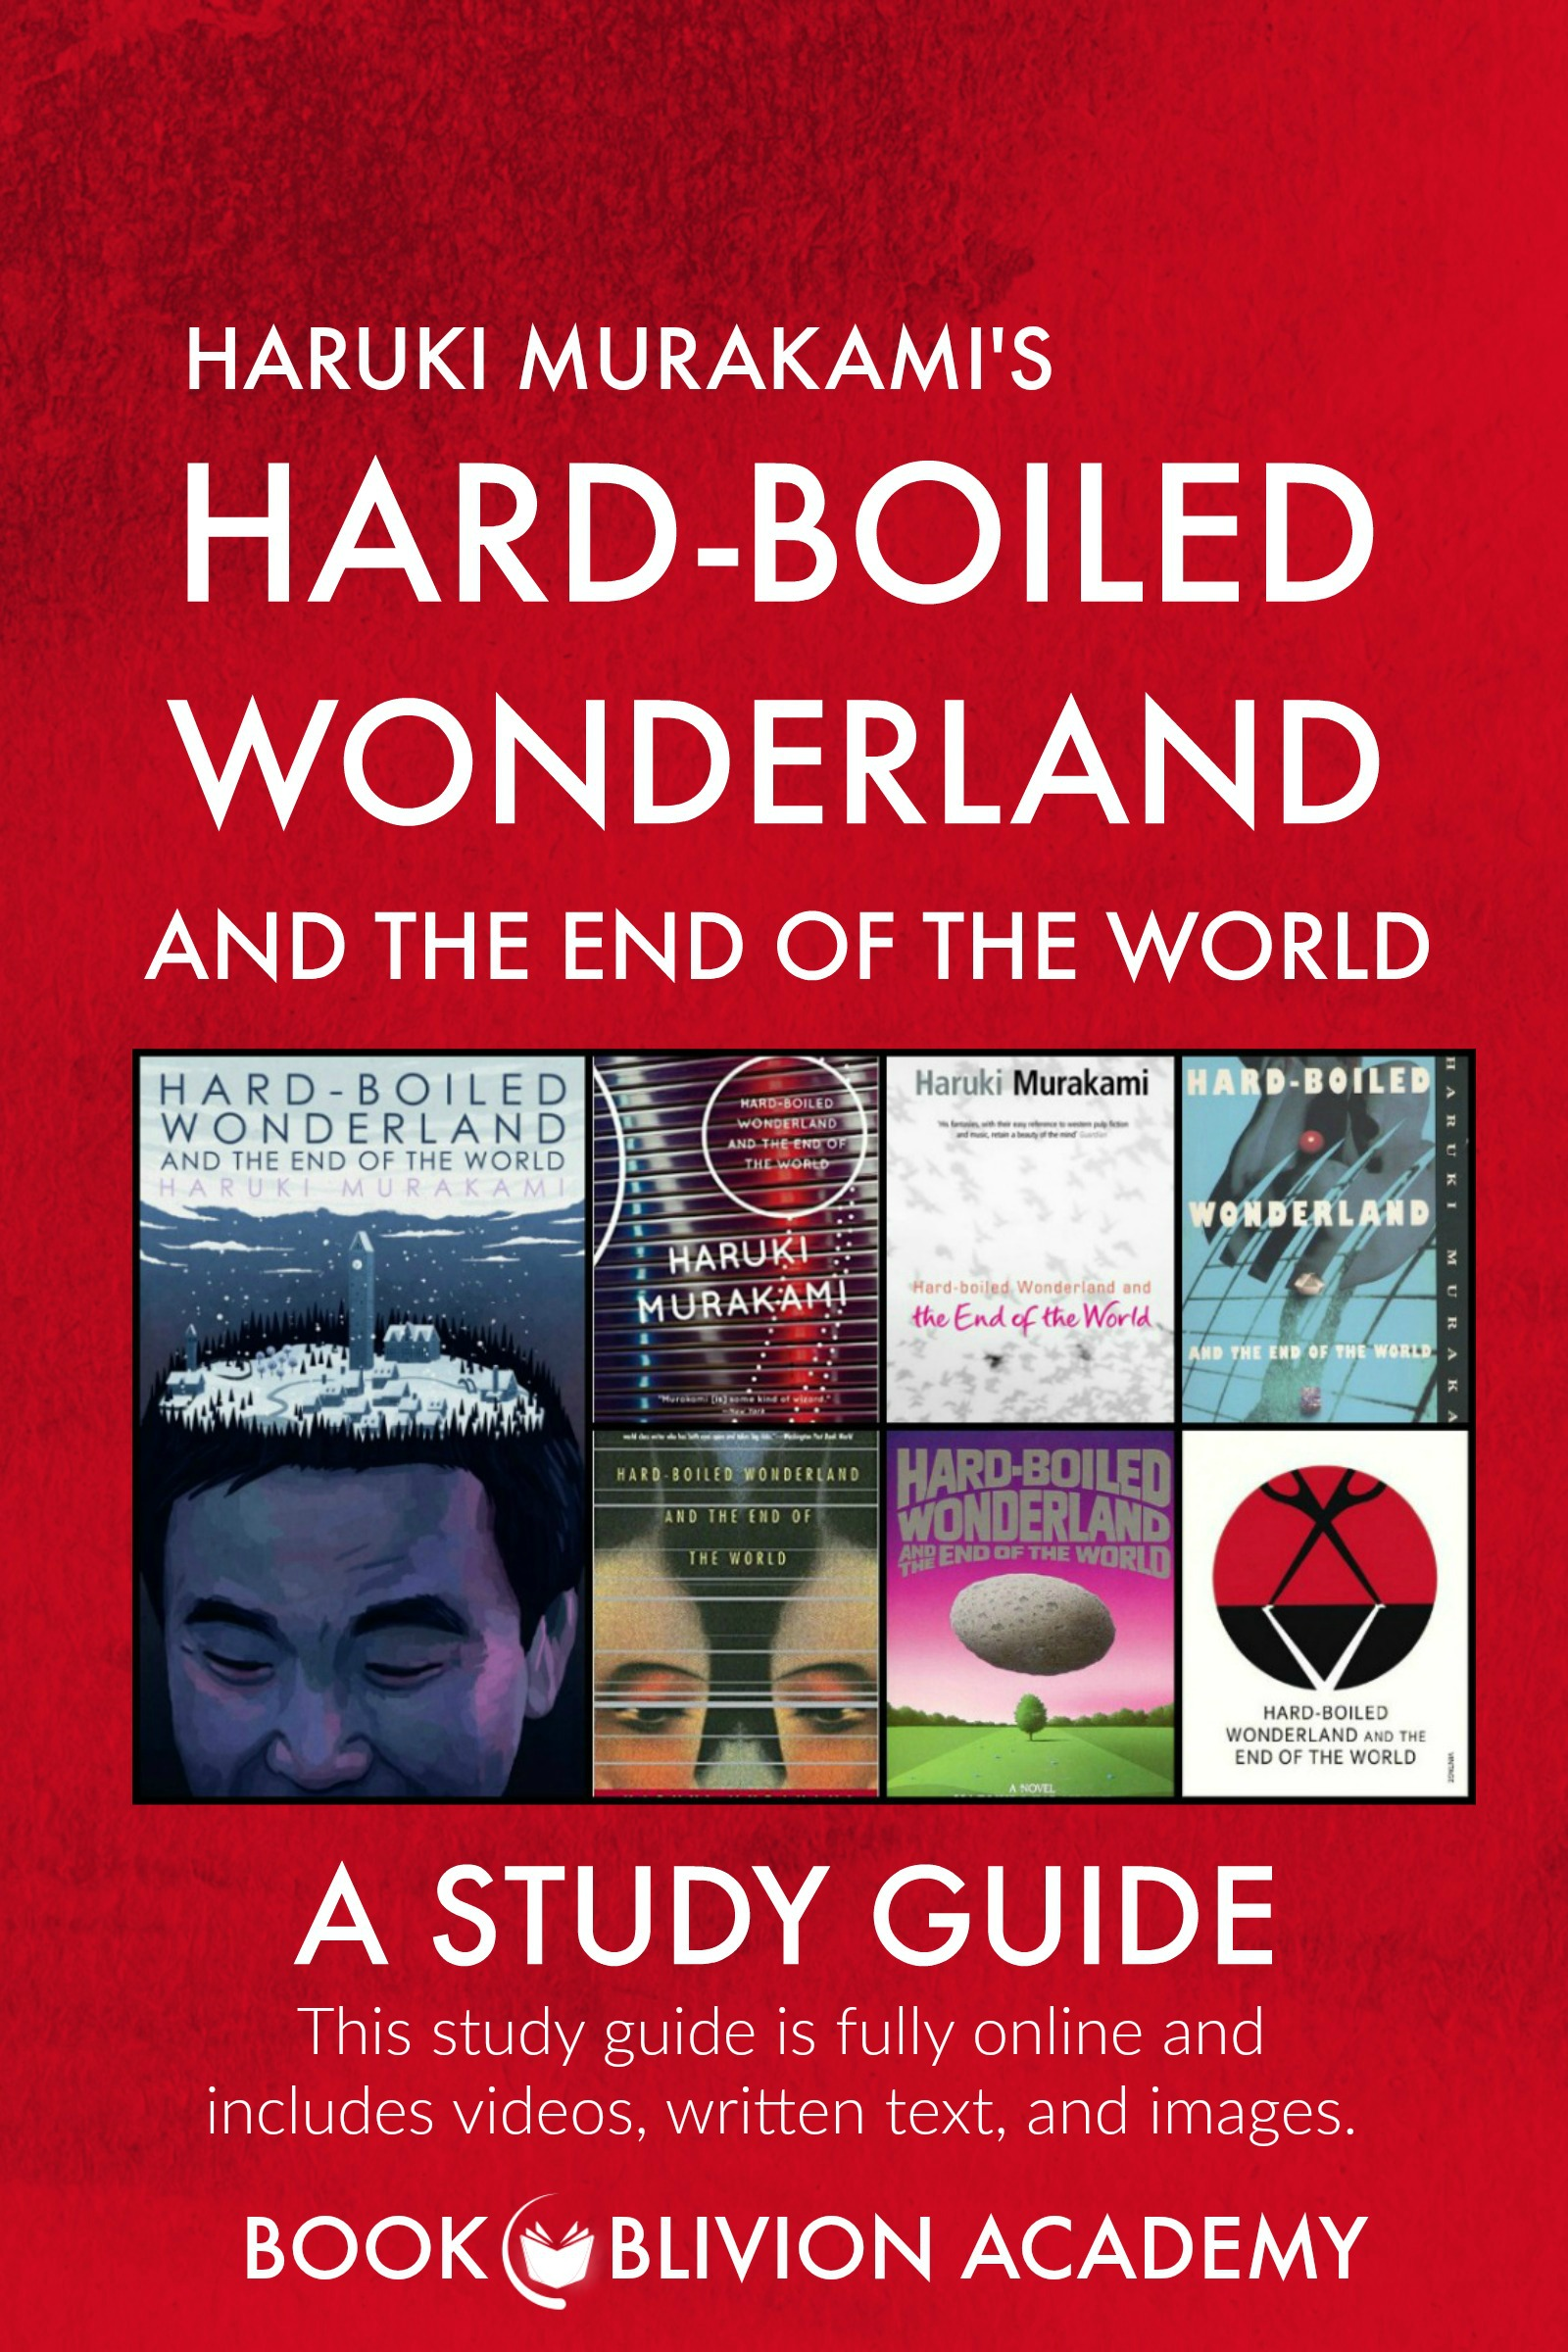 Hard-Boiled Wonderland and the End of the World (Online Reading and Study Guide) [Online Code]